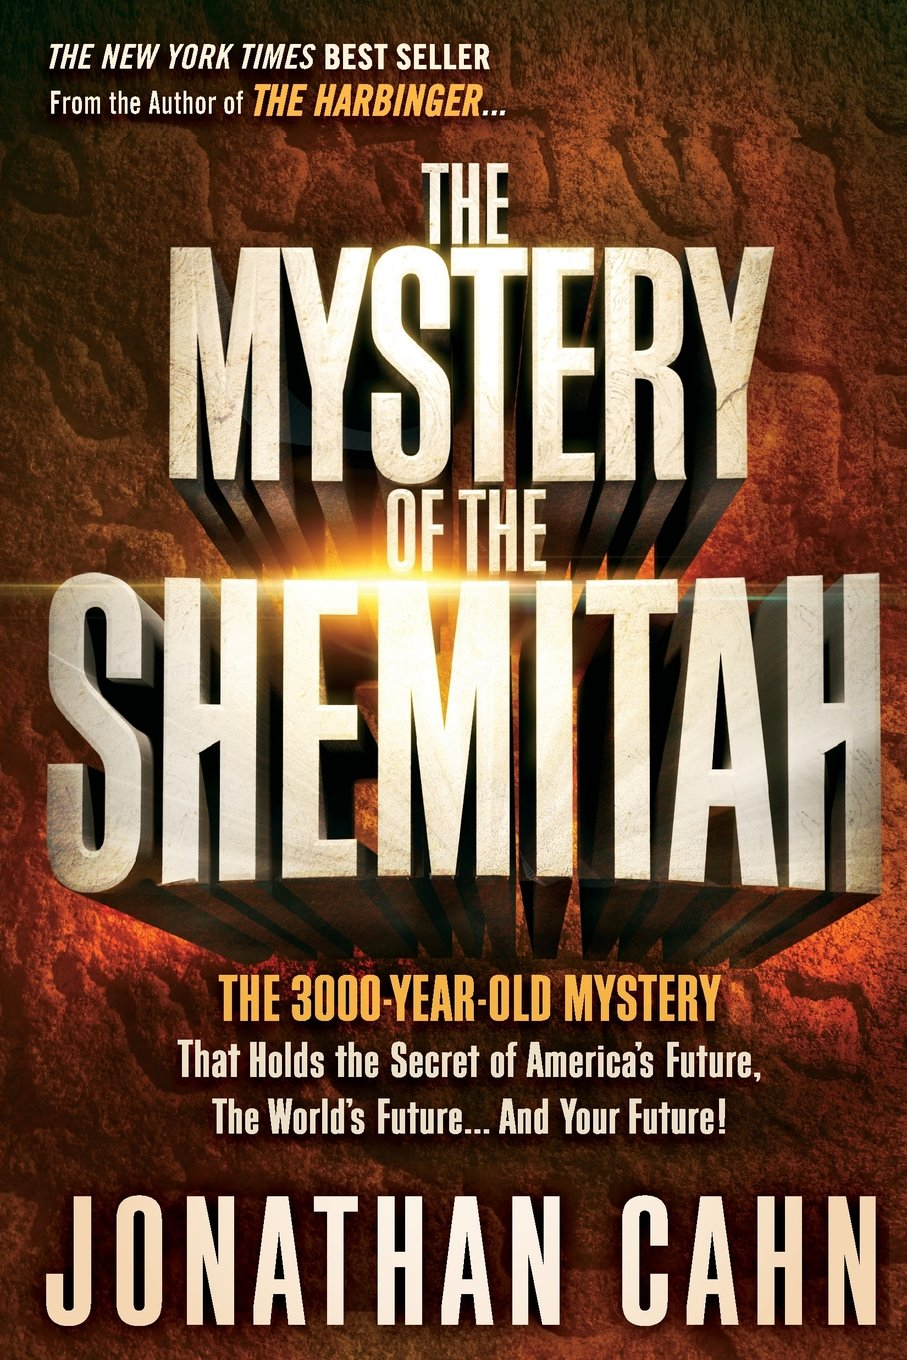 Jonathan cahn books related products dvd cd apparel pictures the mystery of the shemitah the 3000 year old mystery that holds the malvernweather Choice Image